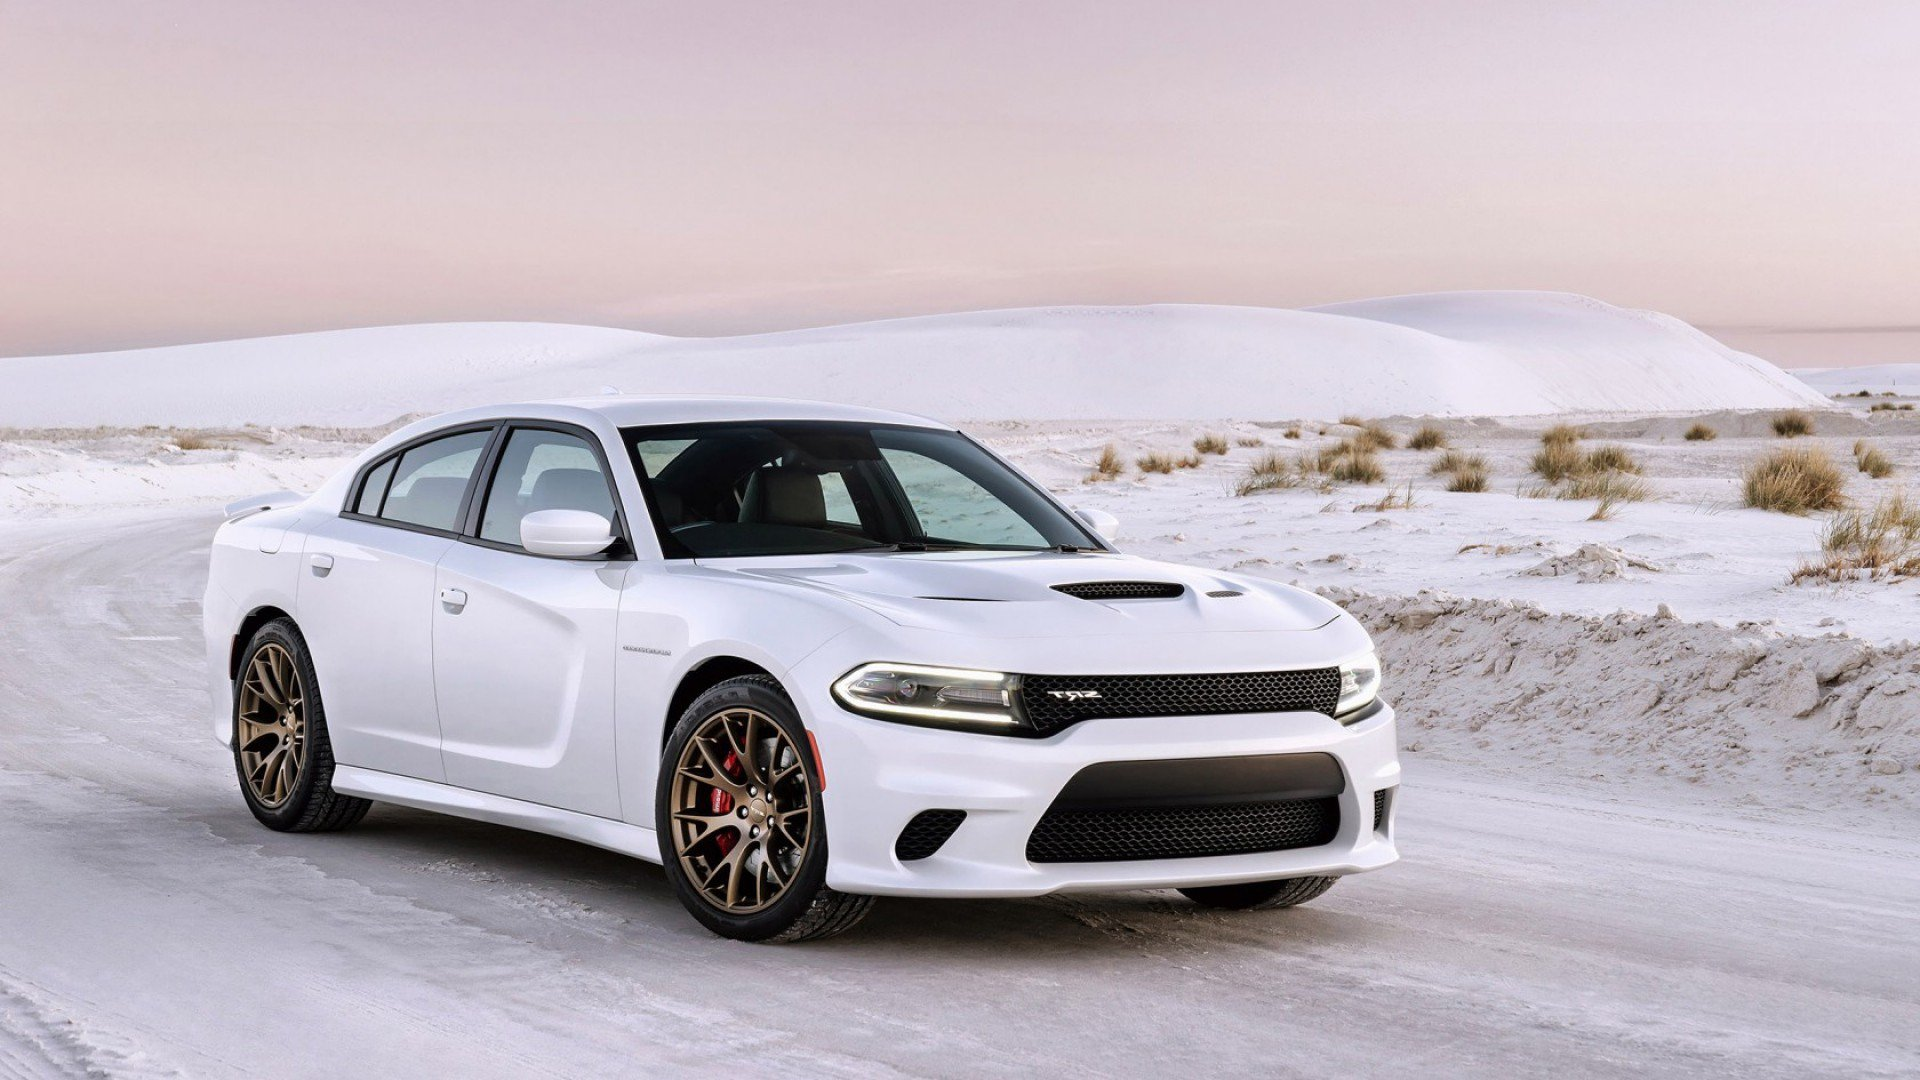 Dodge Charger White Hd Cars 4k Wallpapers Images